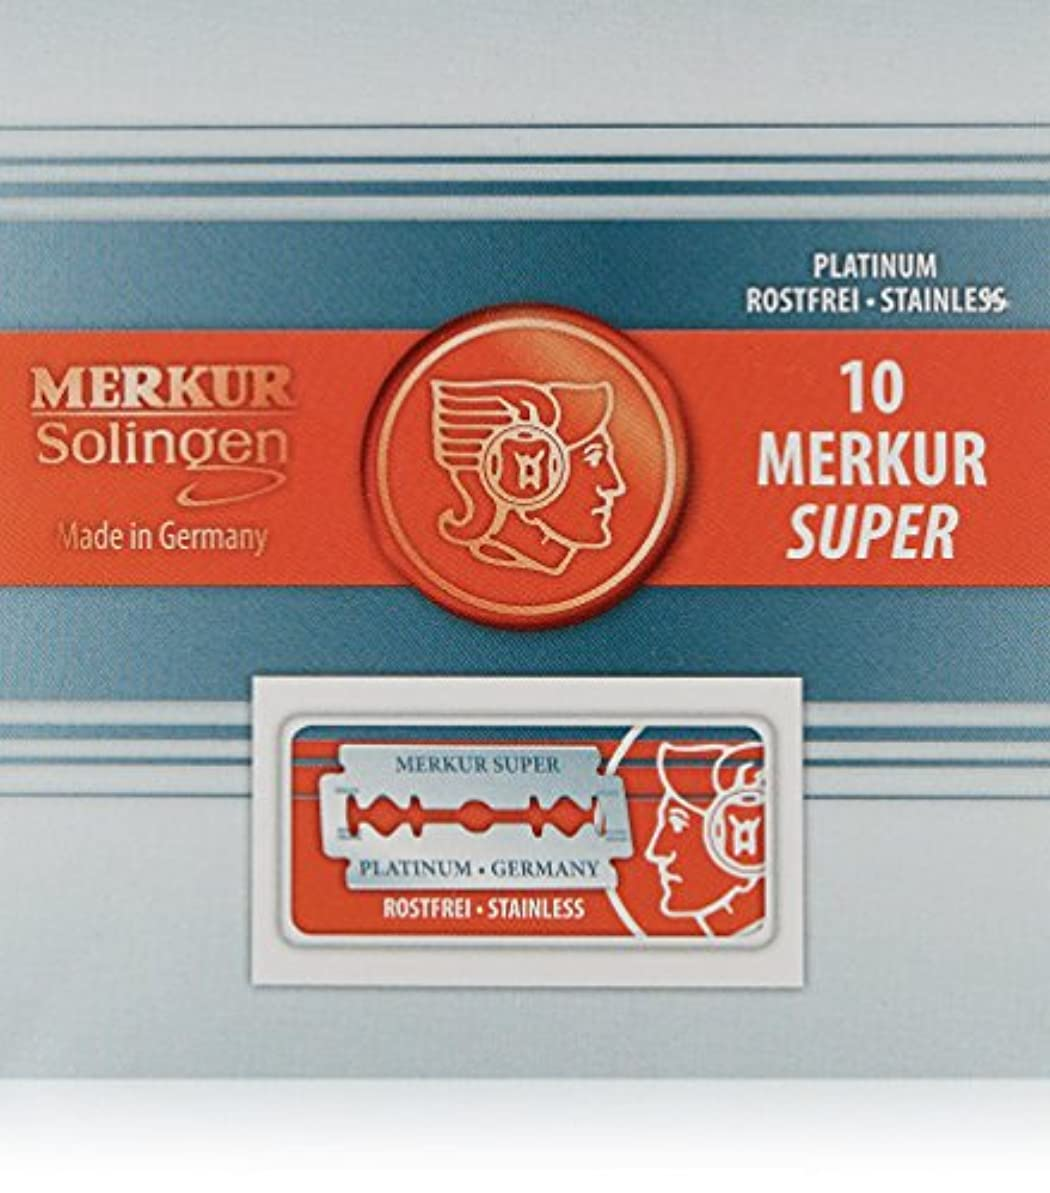 懇願する不一致任命するMerkur Stainless Platinum Safety Razor Blades 10 Pack